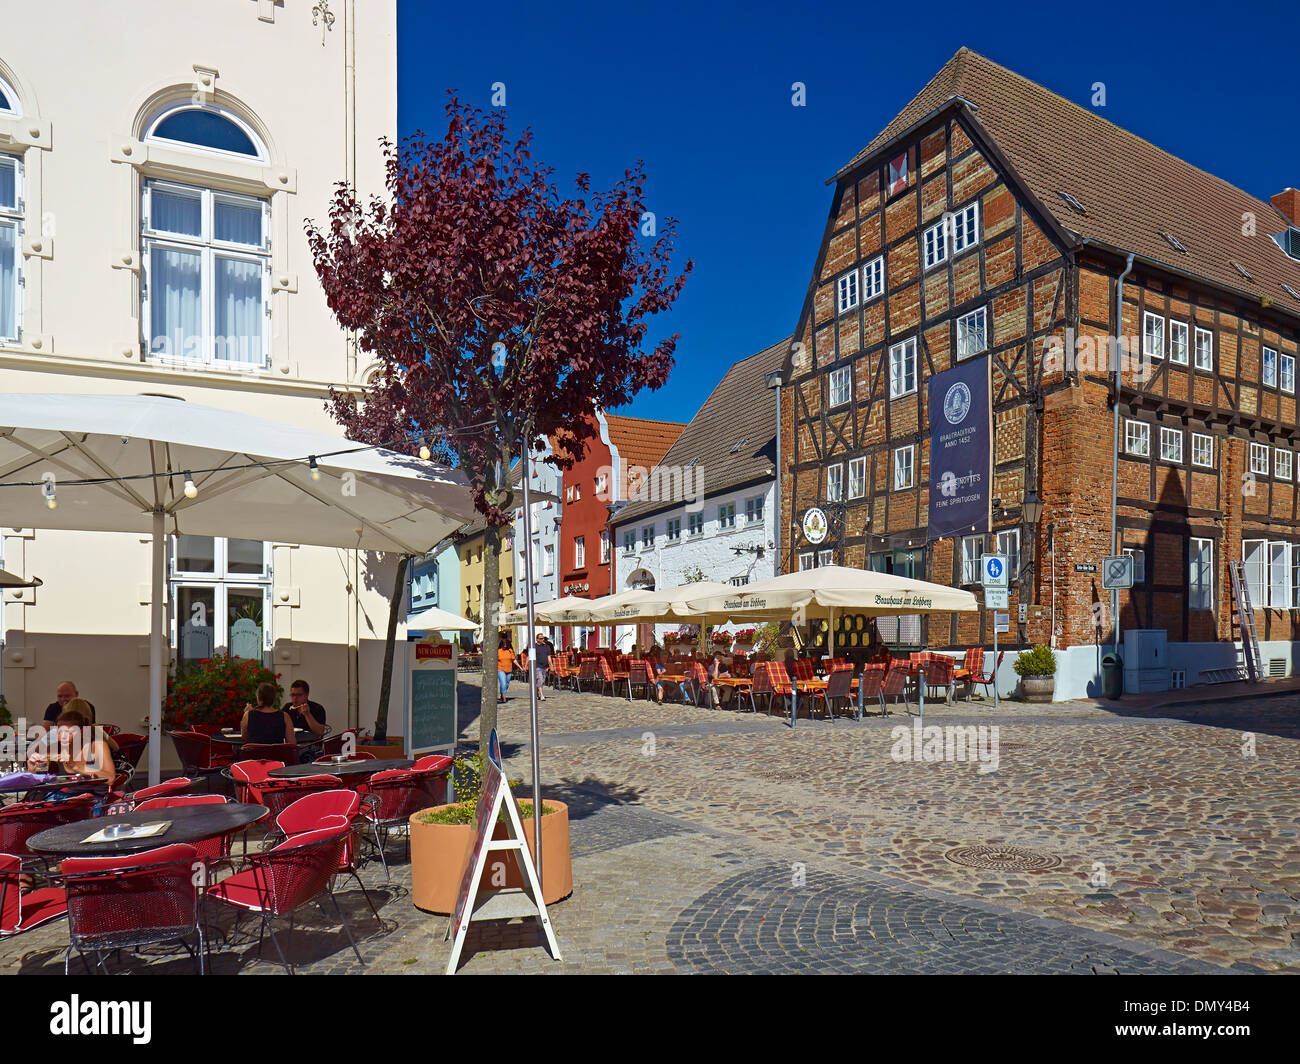 Brauhaus at the Lohberg, Old Harbour, Hanseatic city of Wismar, Mecklenburg-Vorpommern, Germany Stock Photo